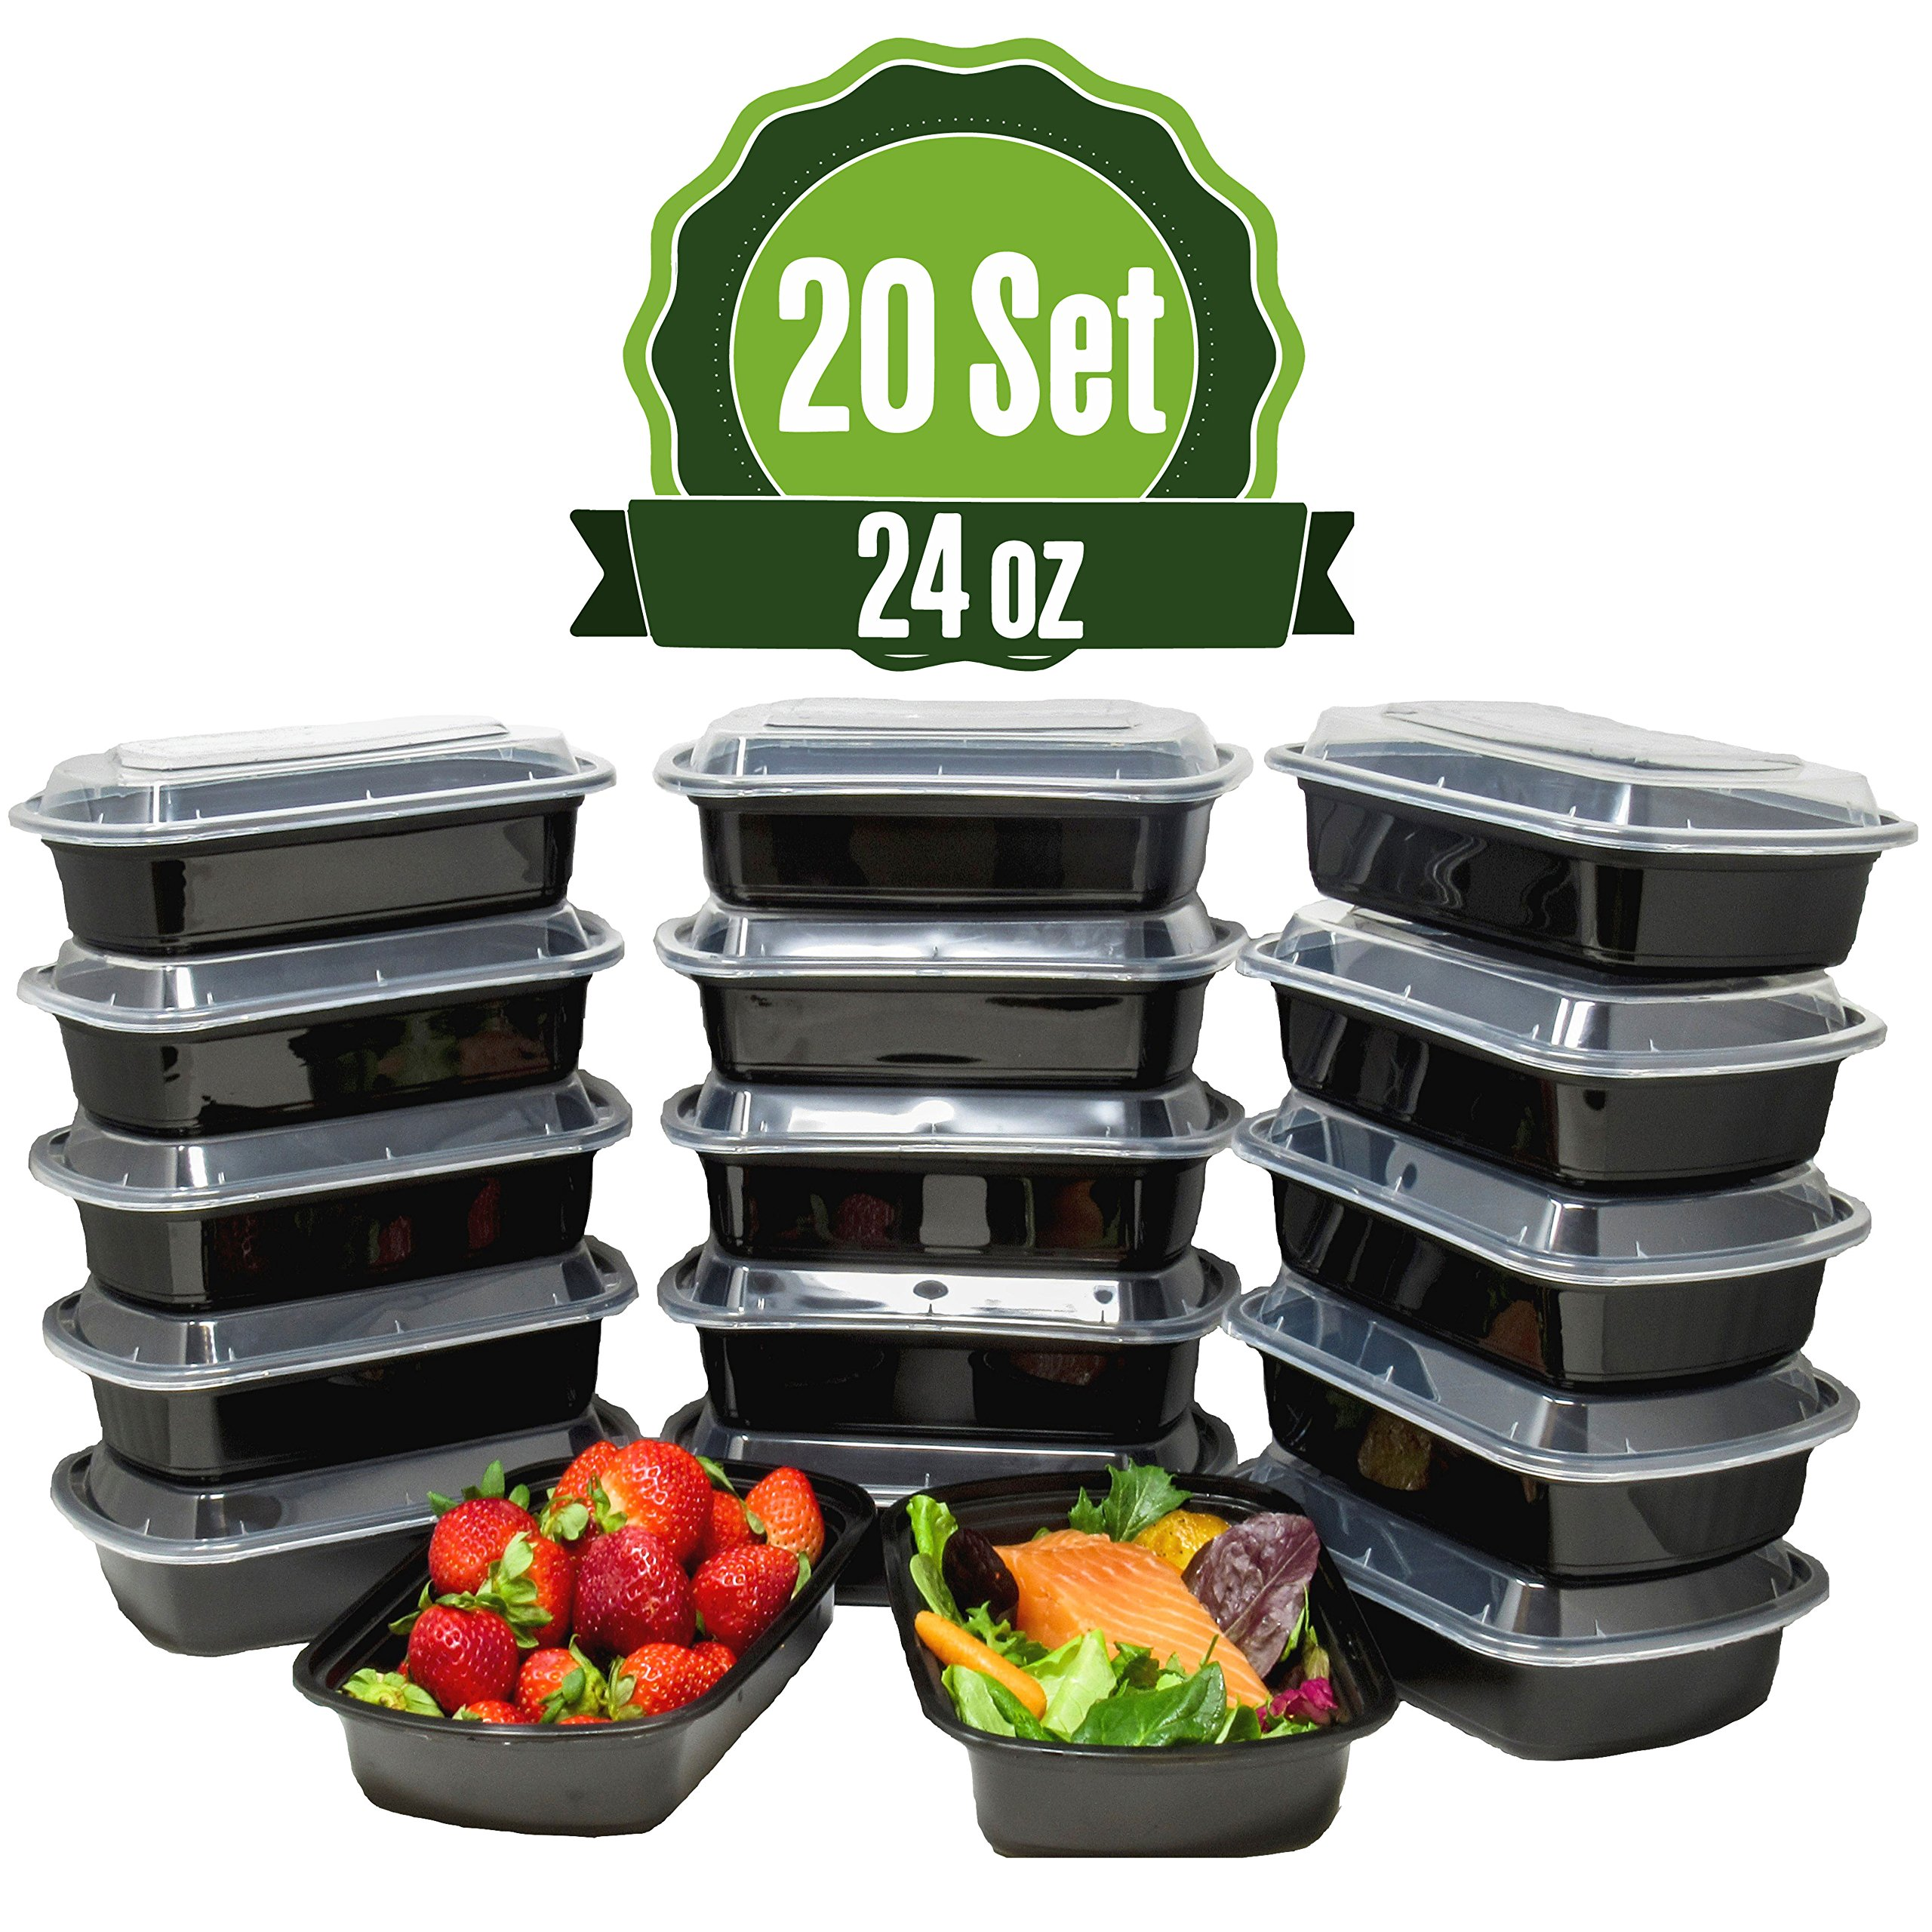 Meal Prep Food Storage Containers with Lids, 1 Compartment (24oz) by Shoplenty